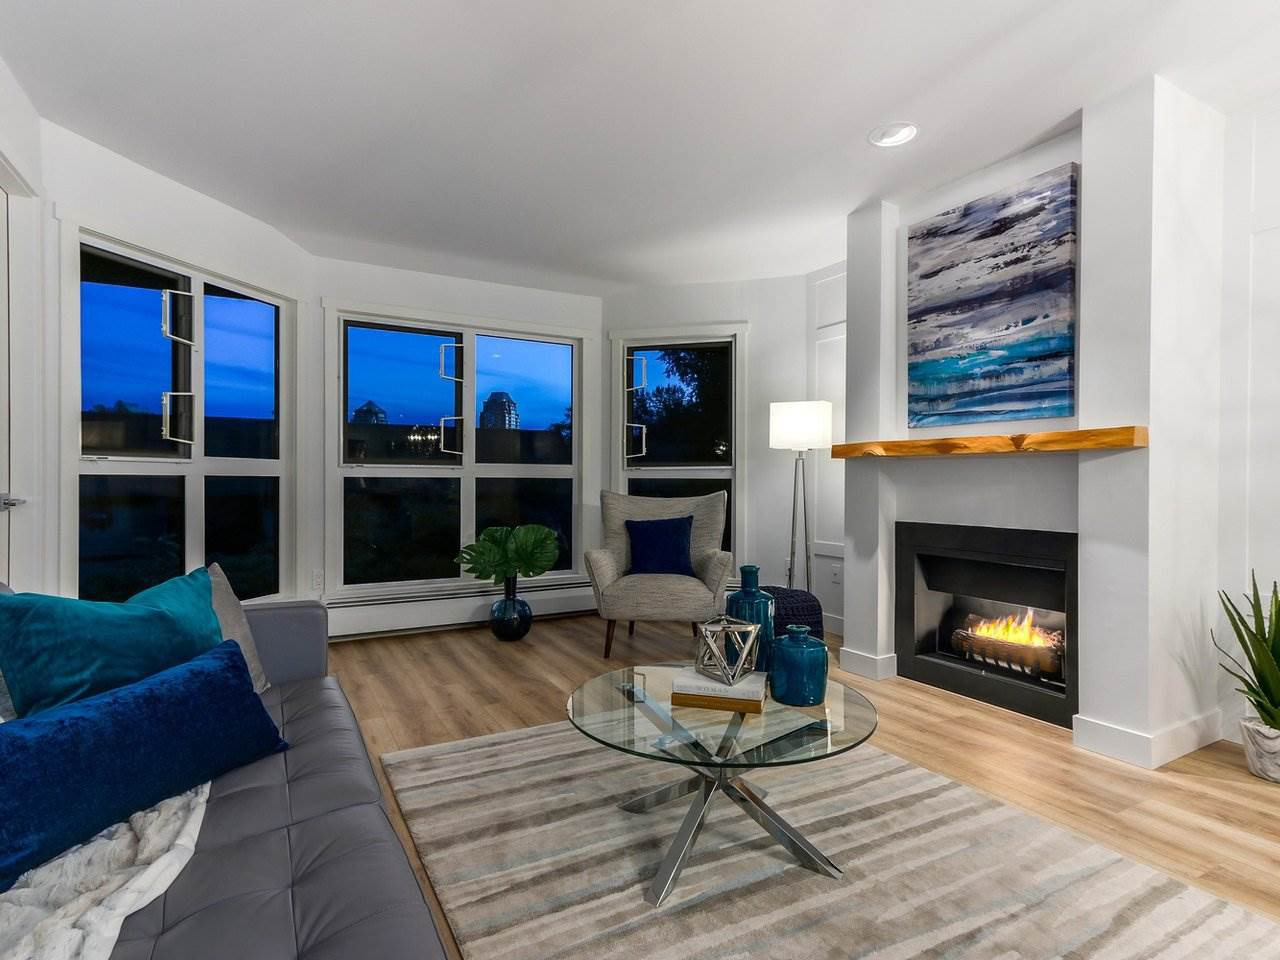 """Main Photo: 317 7377 SALISBURY Avenue in Burnaby: Highgate Condo for sale in """"The Beresford"""" (Burnaby South)  : MLS®# R2322595"""